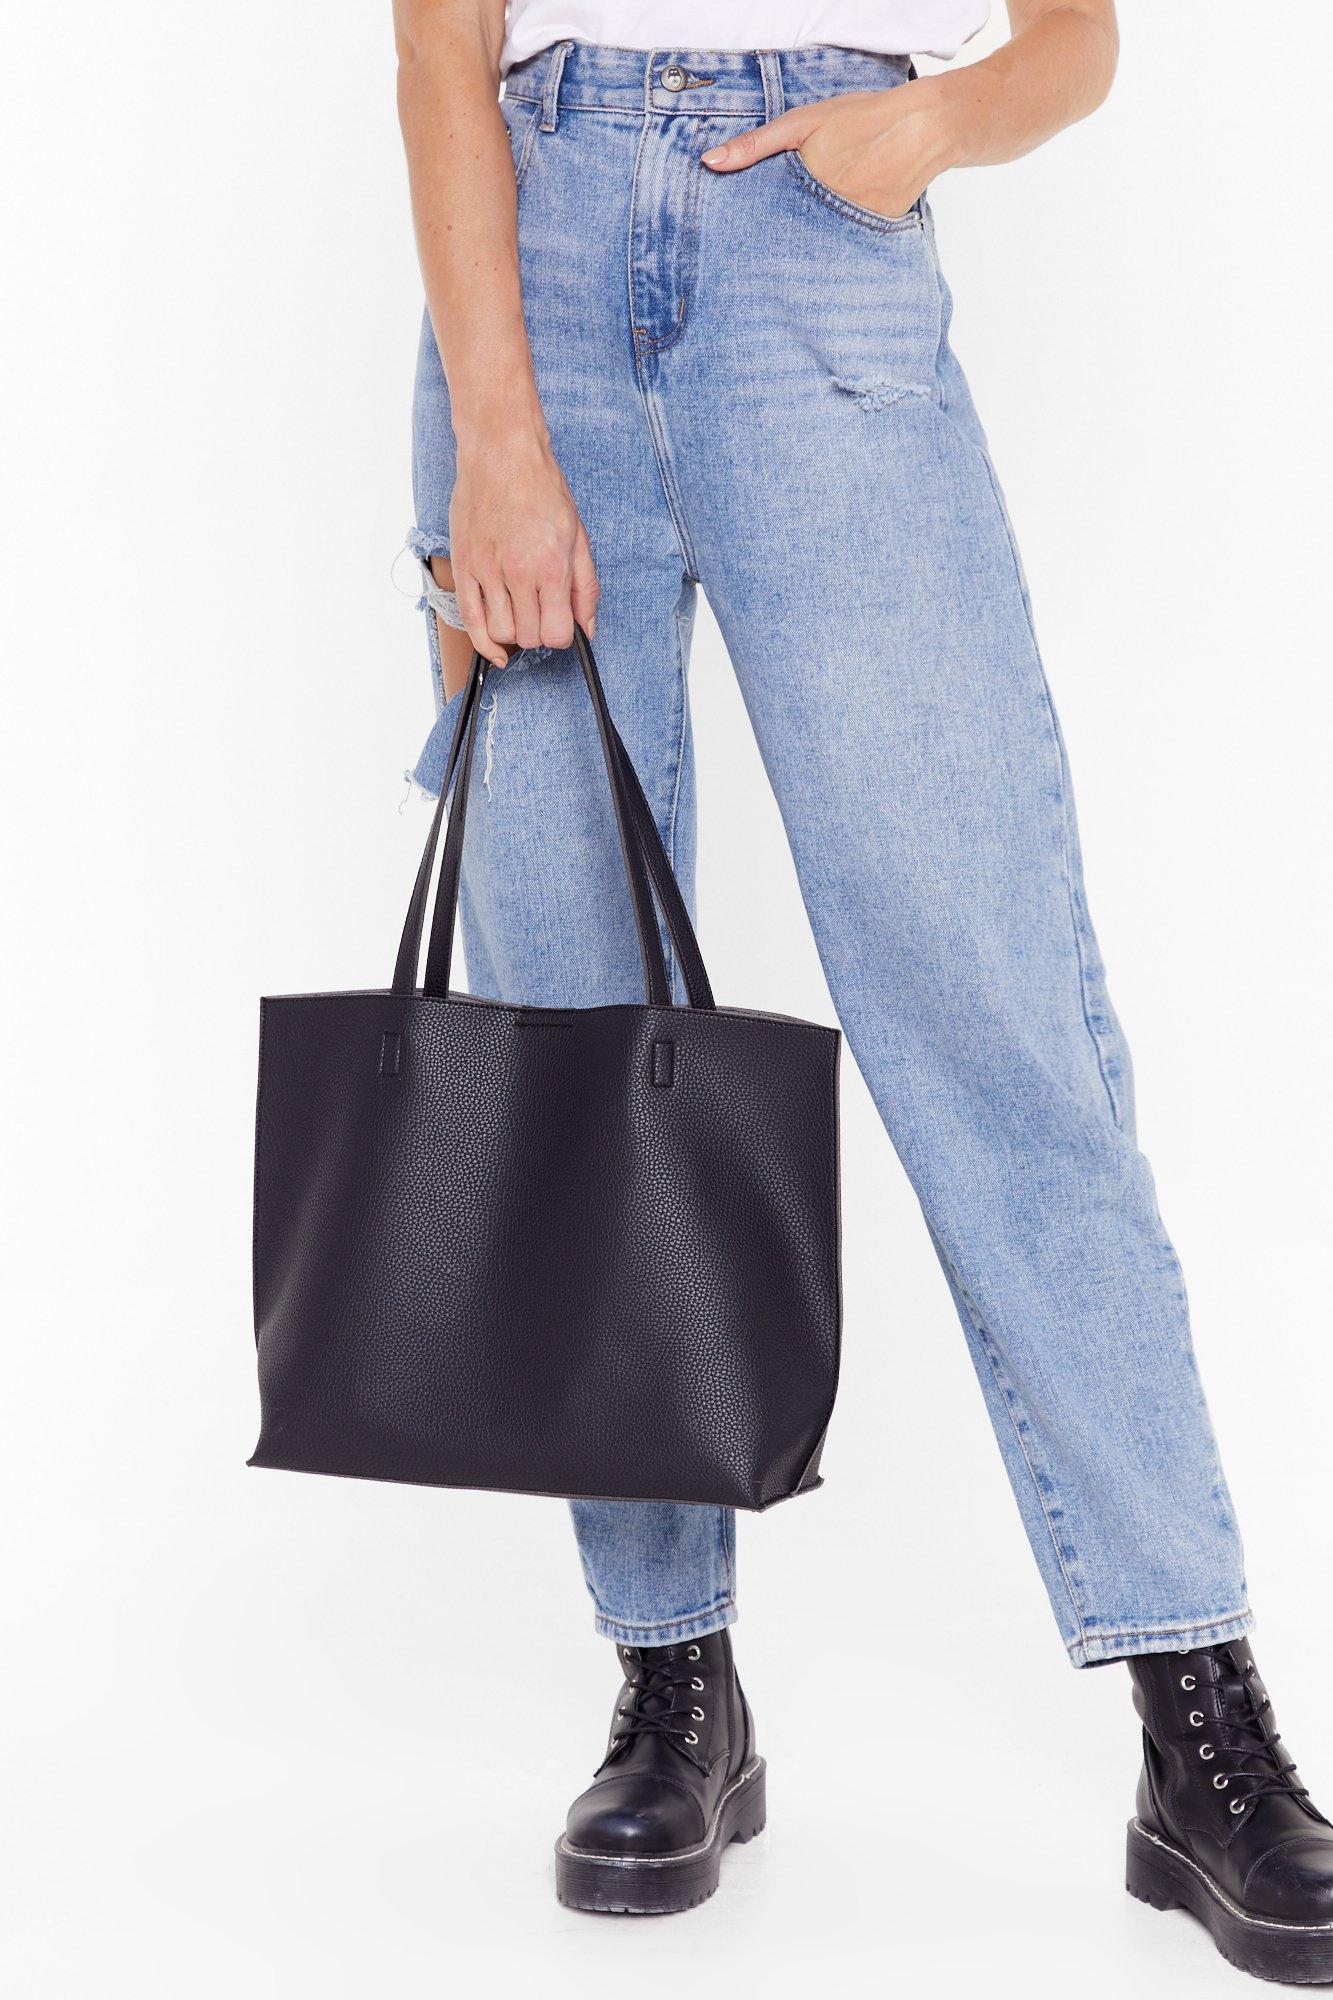 Image of WANT Hold Your Own Faux Leather Tote Bag